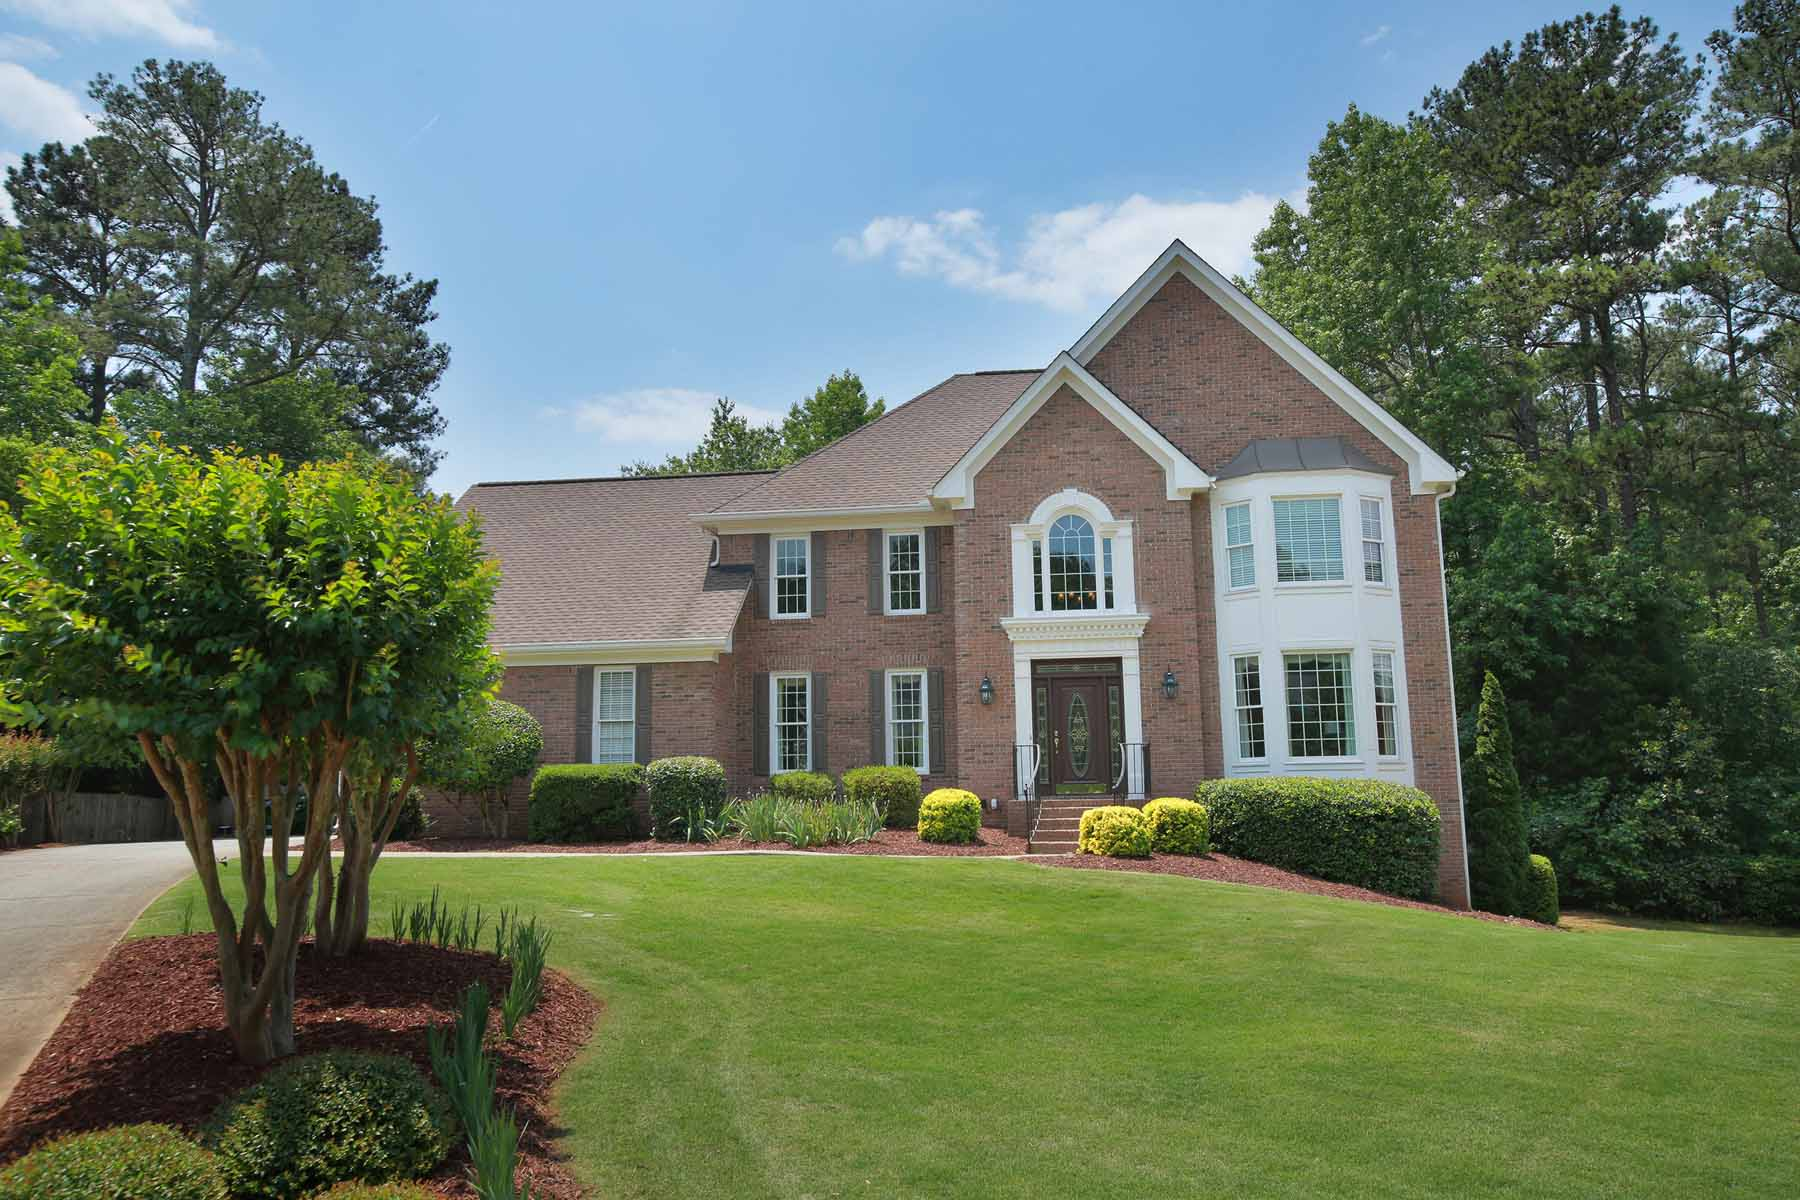 Casa Unifamiliar por un Venta en This Home is a Perfect 10 10350 Tuxford Drive Alpharetta, Georgia, 30022 Estados Unidos